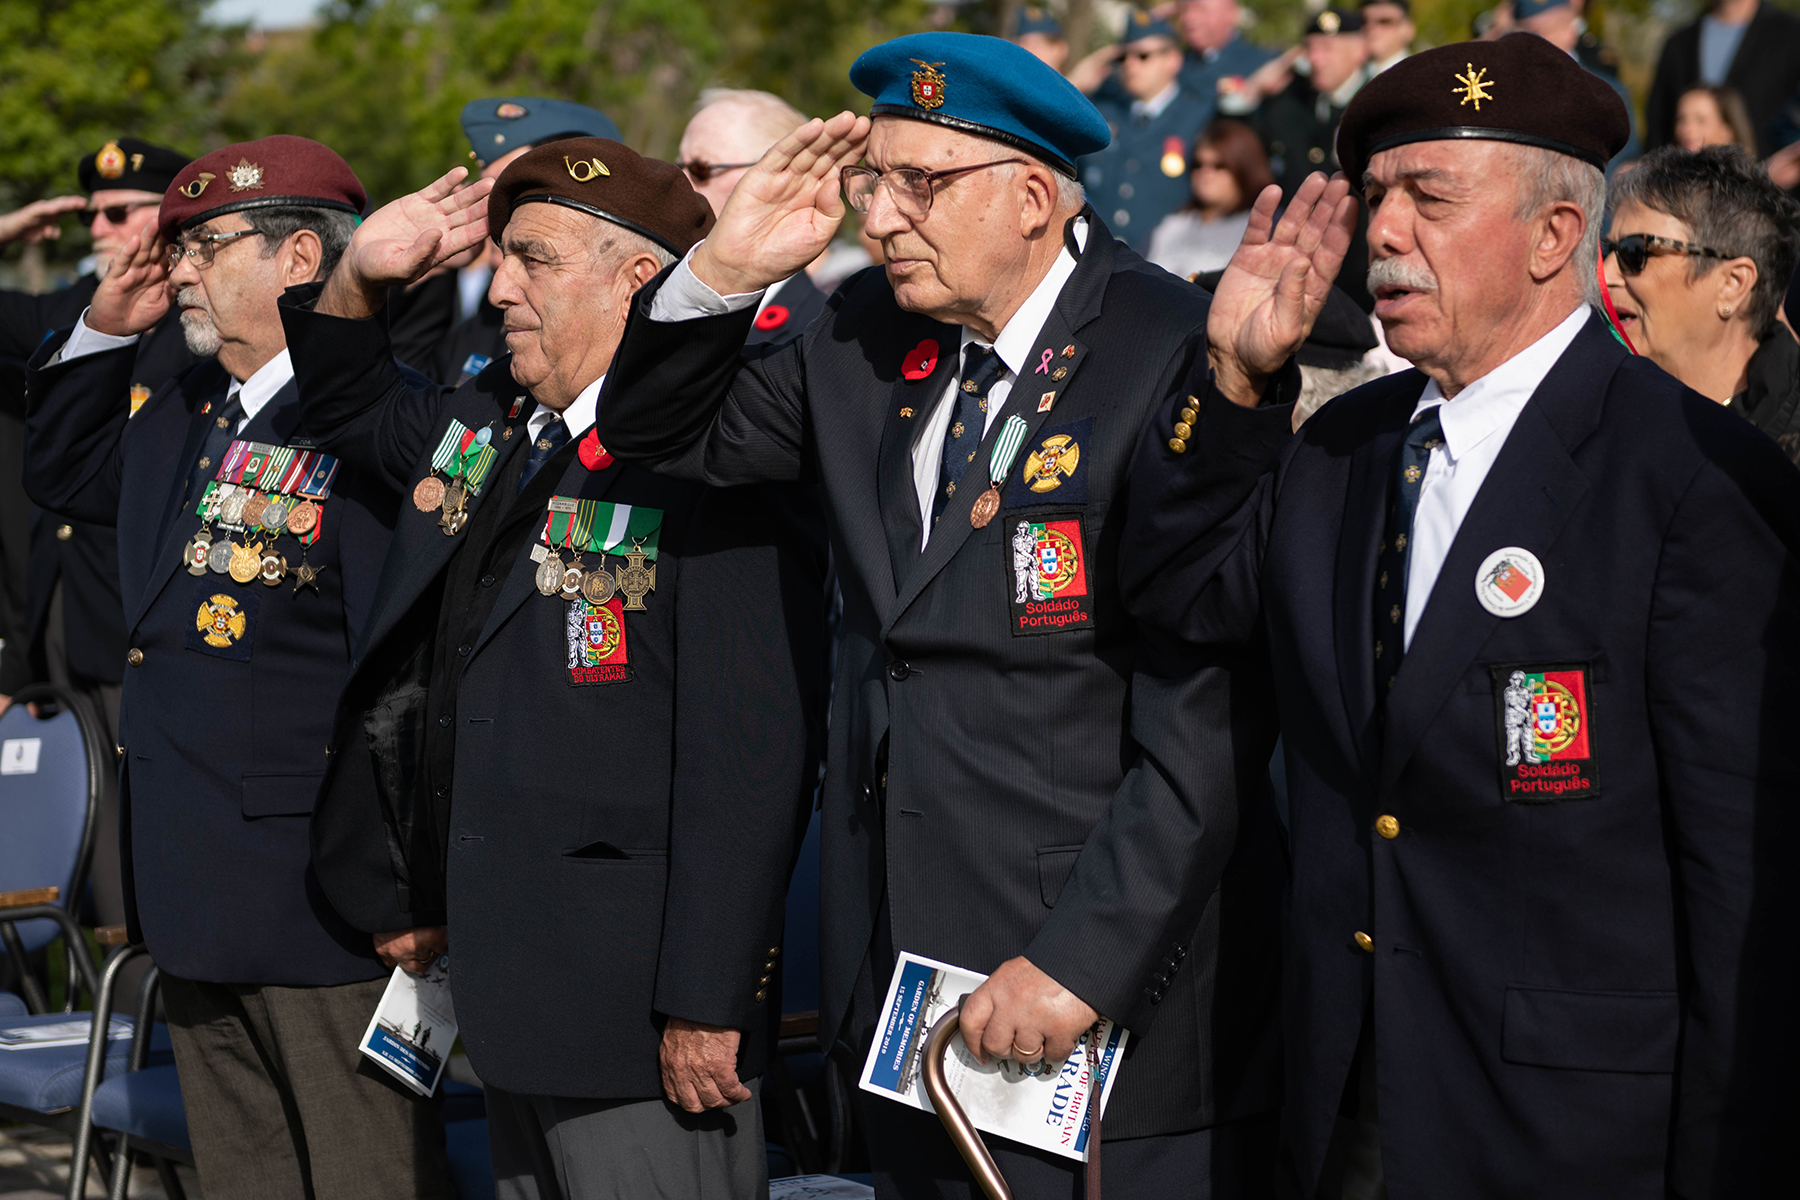 Portuguese-Canadian veterans salute during the September 15, 2019, ceremony held at 17 Wing Winnipeg, Manitoba, marking the 79th anniversary of the Battle of Britain. PHOTO: Corporal Angela Gore, WG2019-0456-002